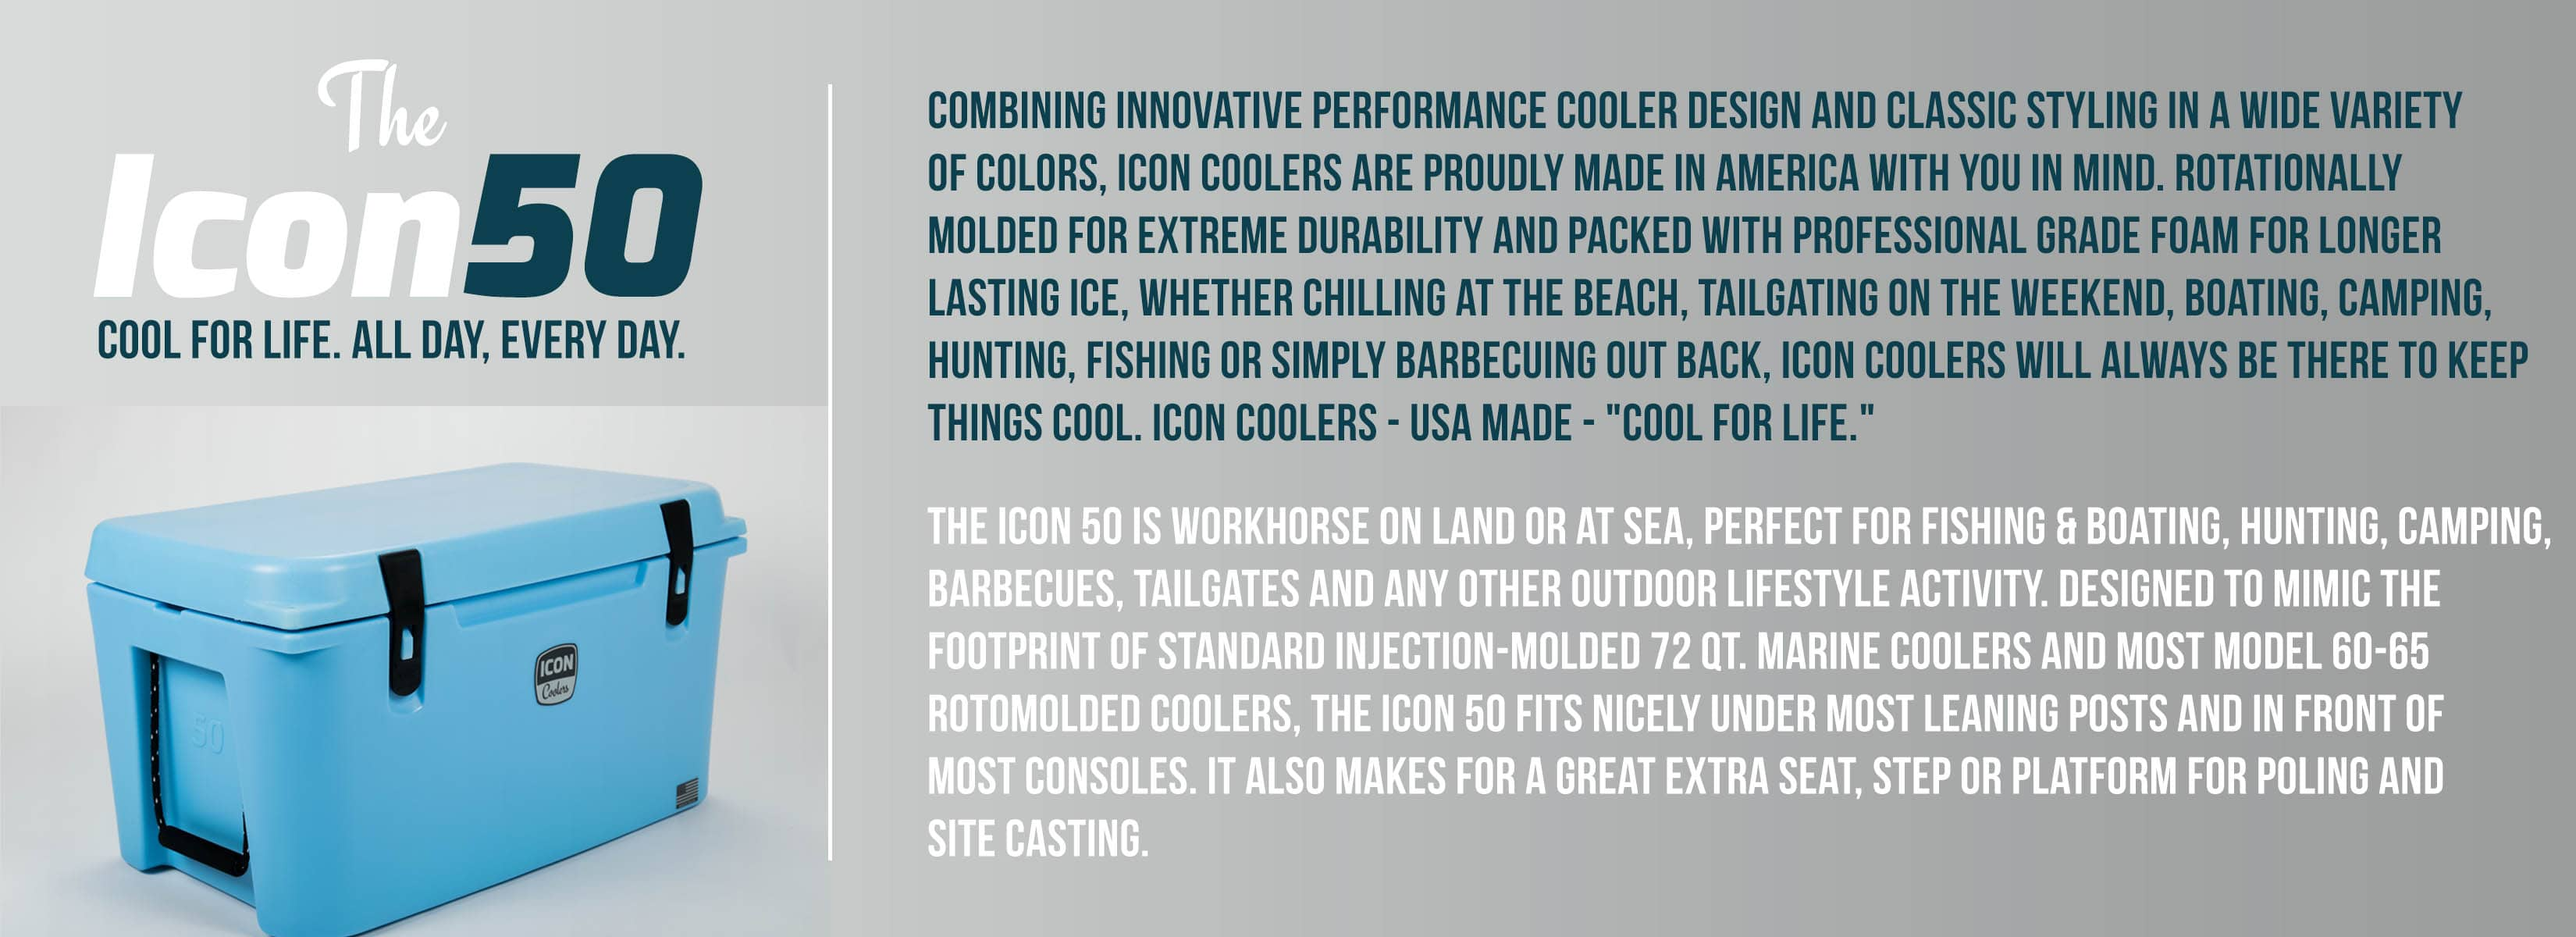 icon-hard-cooler-50-subcat-header-min.jpg